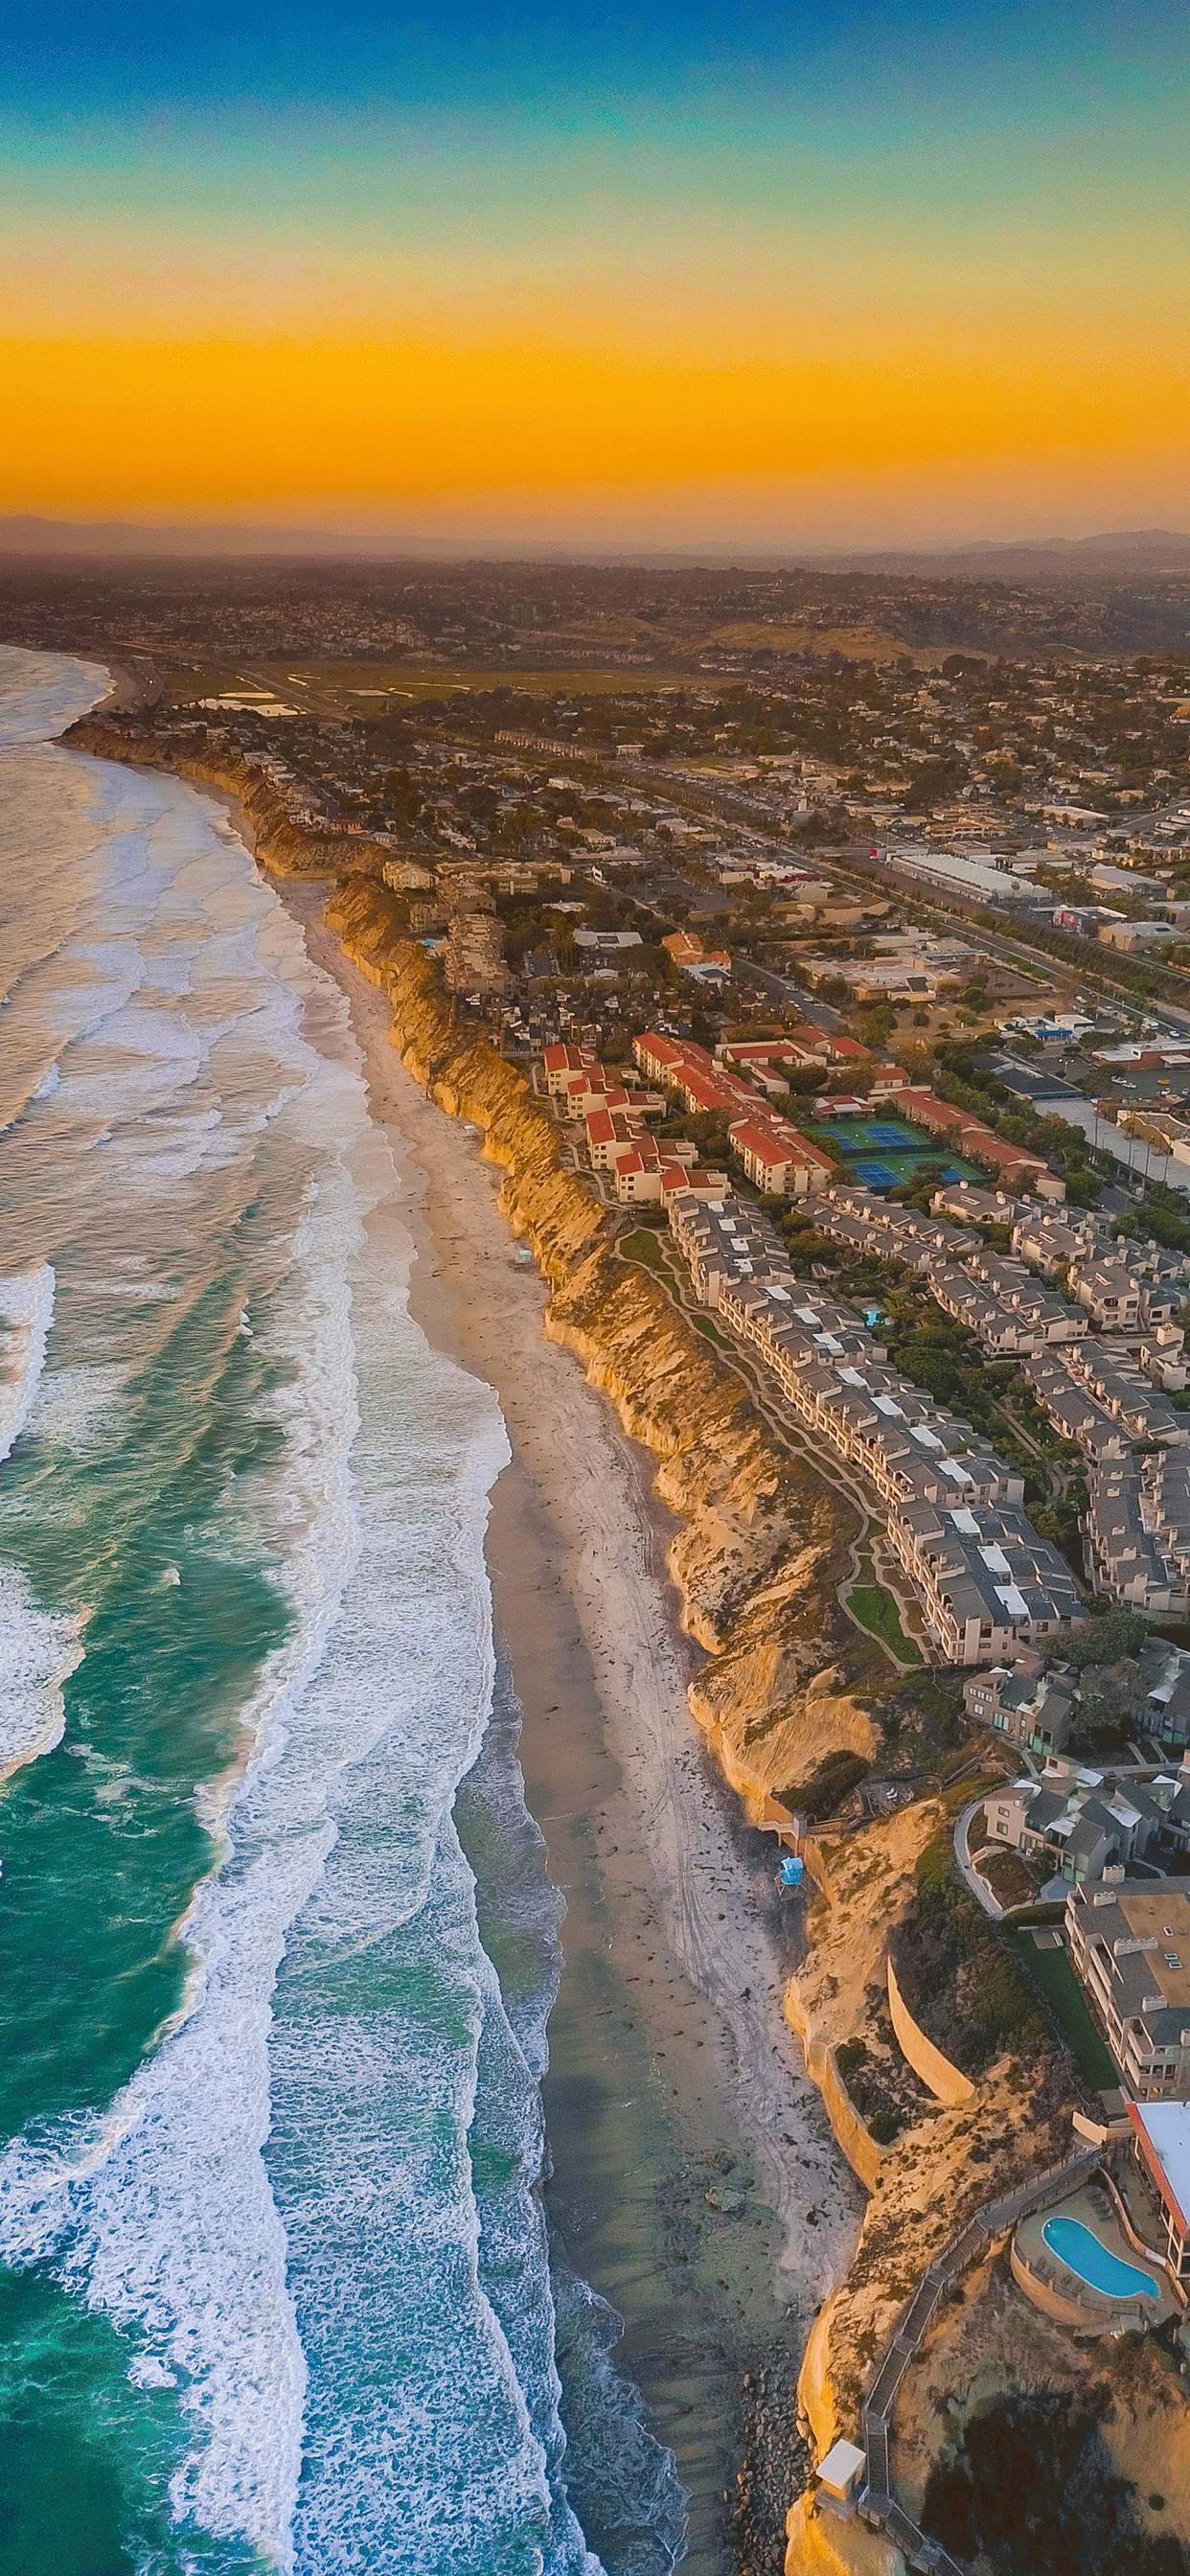 iPhone wallpaper aerial images san diego Fonds d'écran iPhone du 01/04/2019